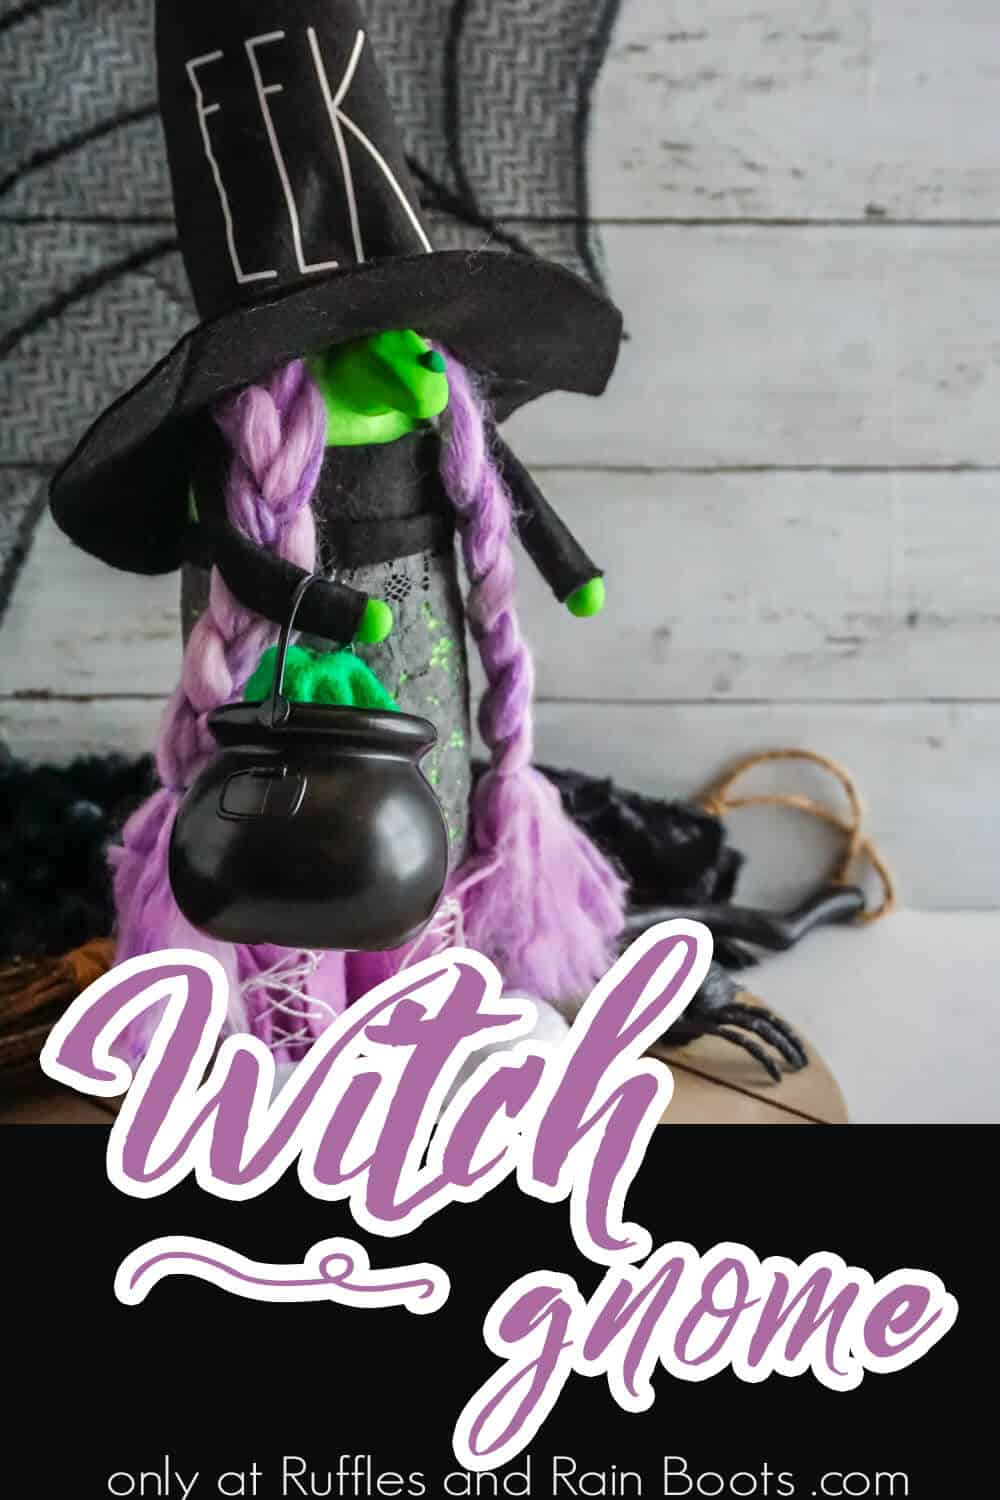 easy halloween gnome witch with text which reads witch gnome